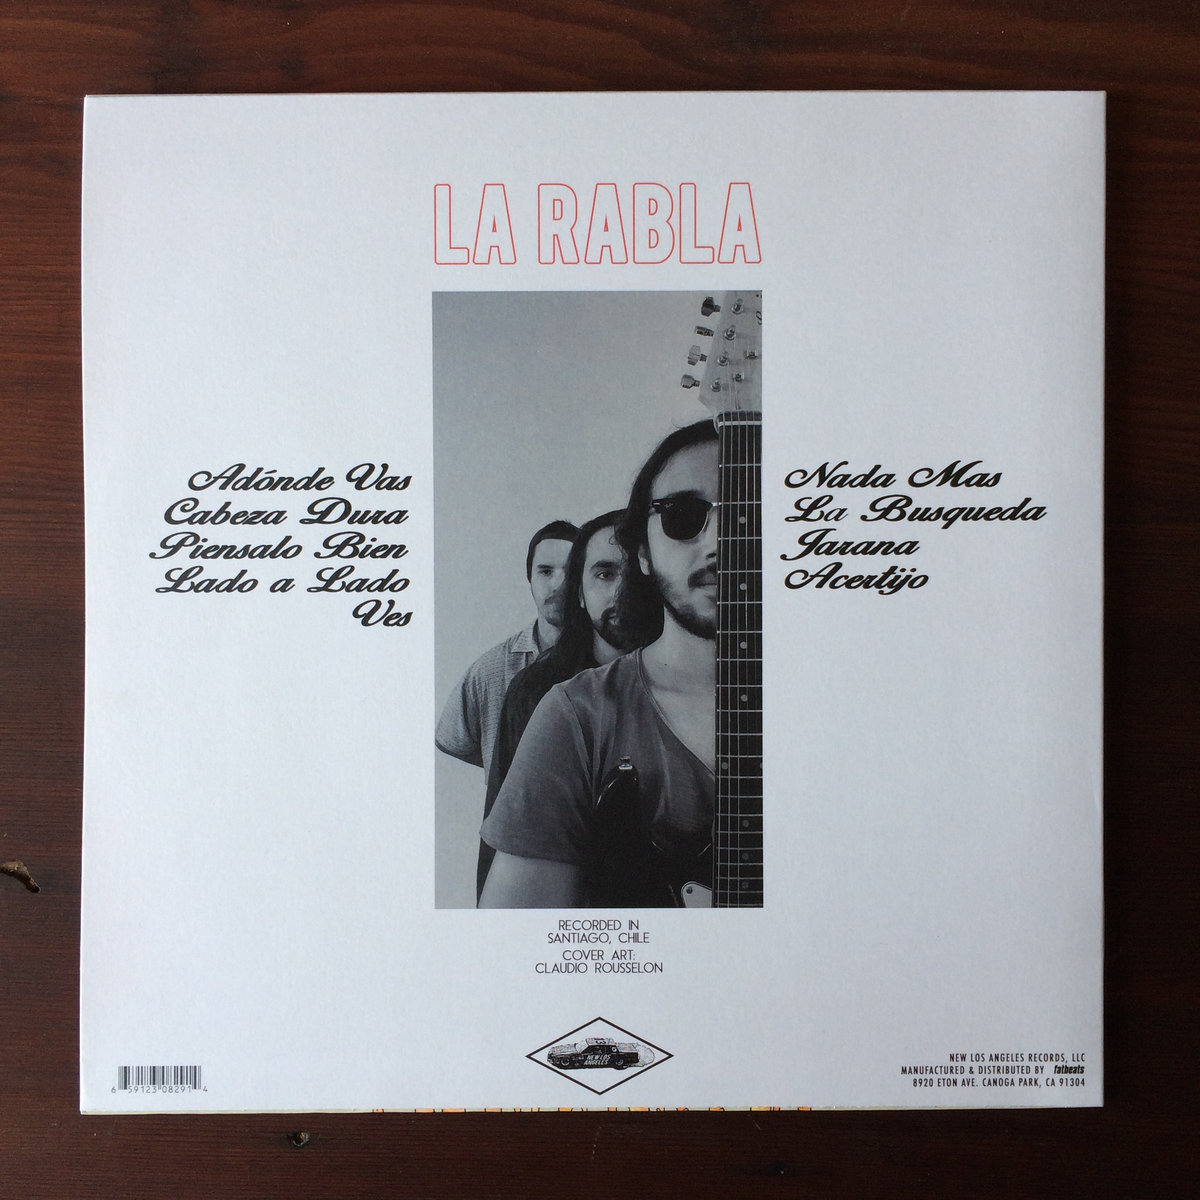 La rabla new los angeles la rablas self titled debut album on limited edition virgin vinyl with cover illustration by claudio rousselon of mexico printed on heavyweight malvernweather